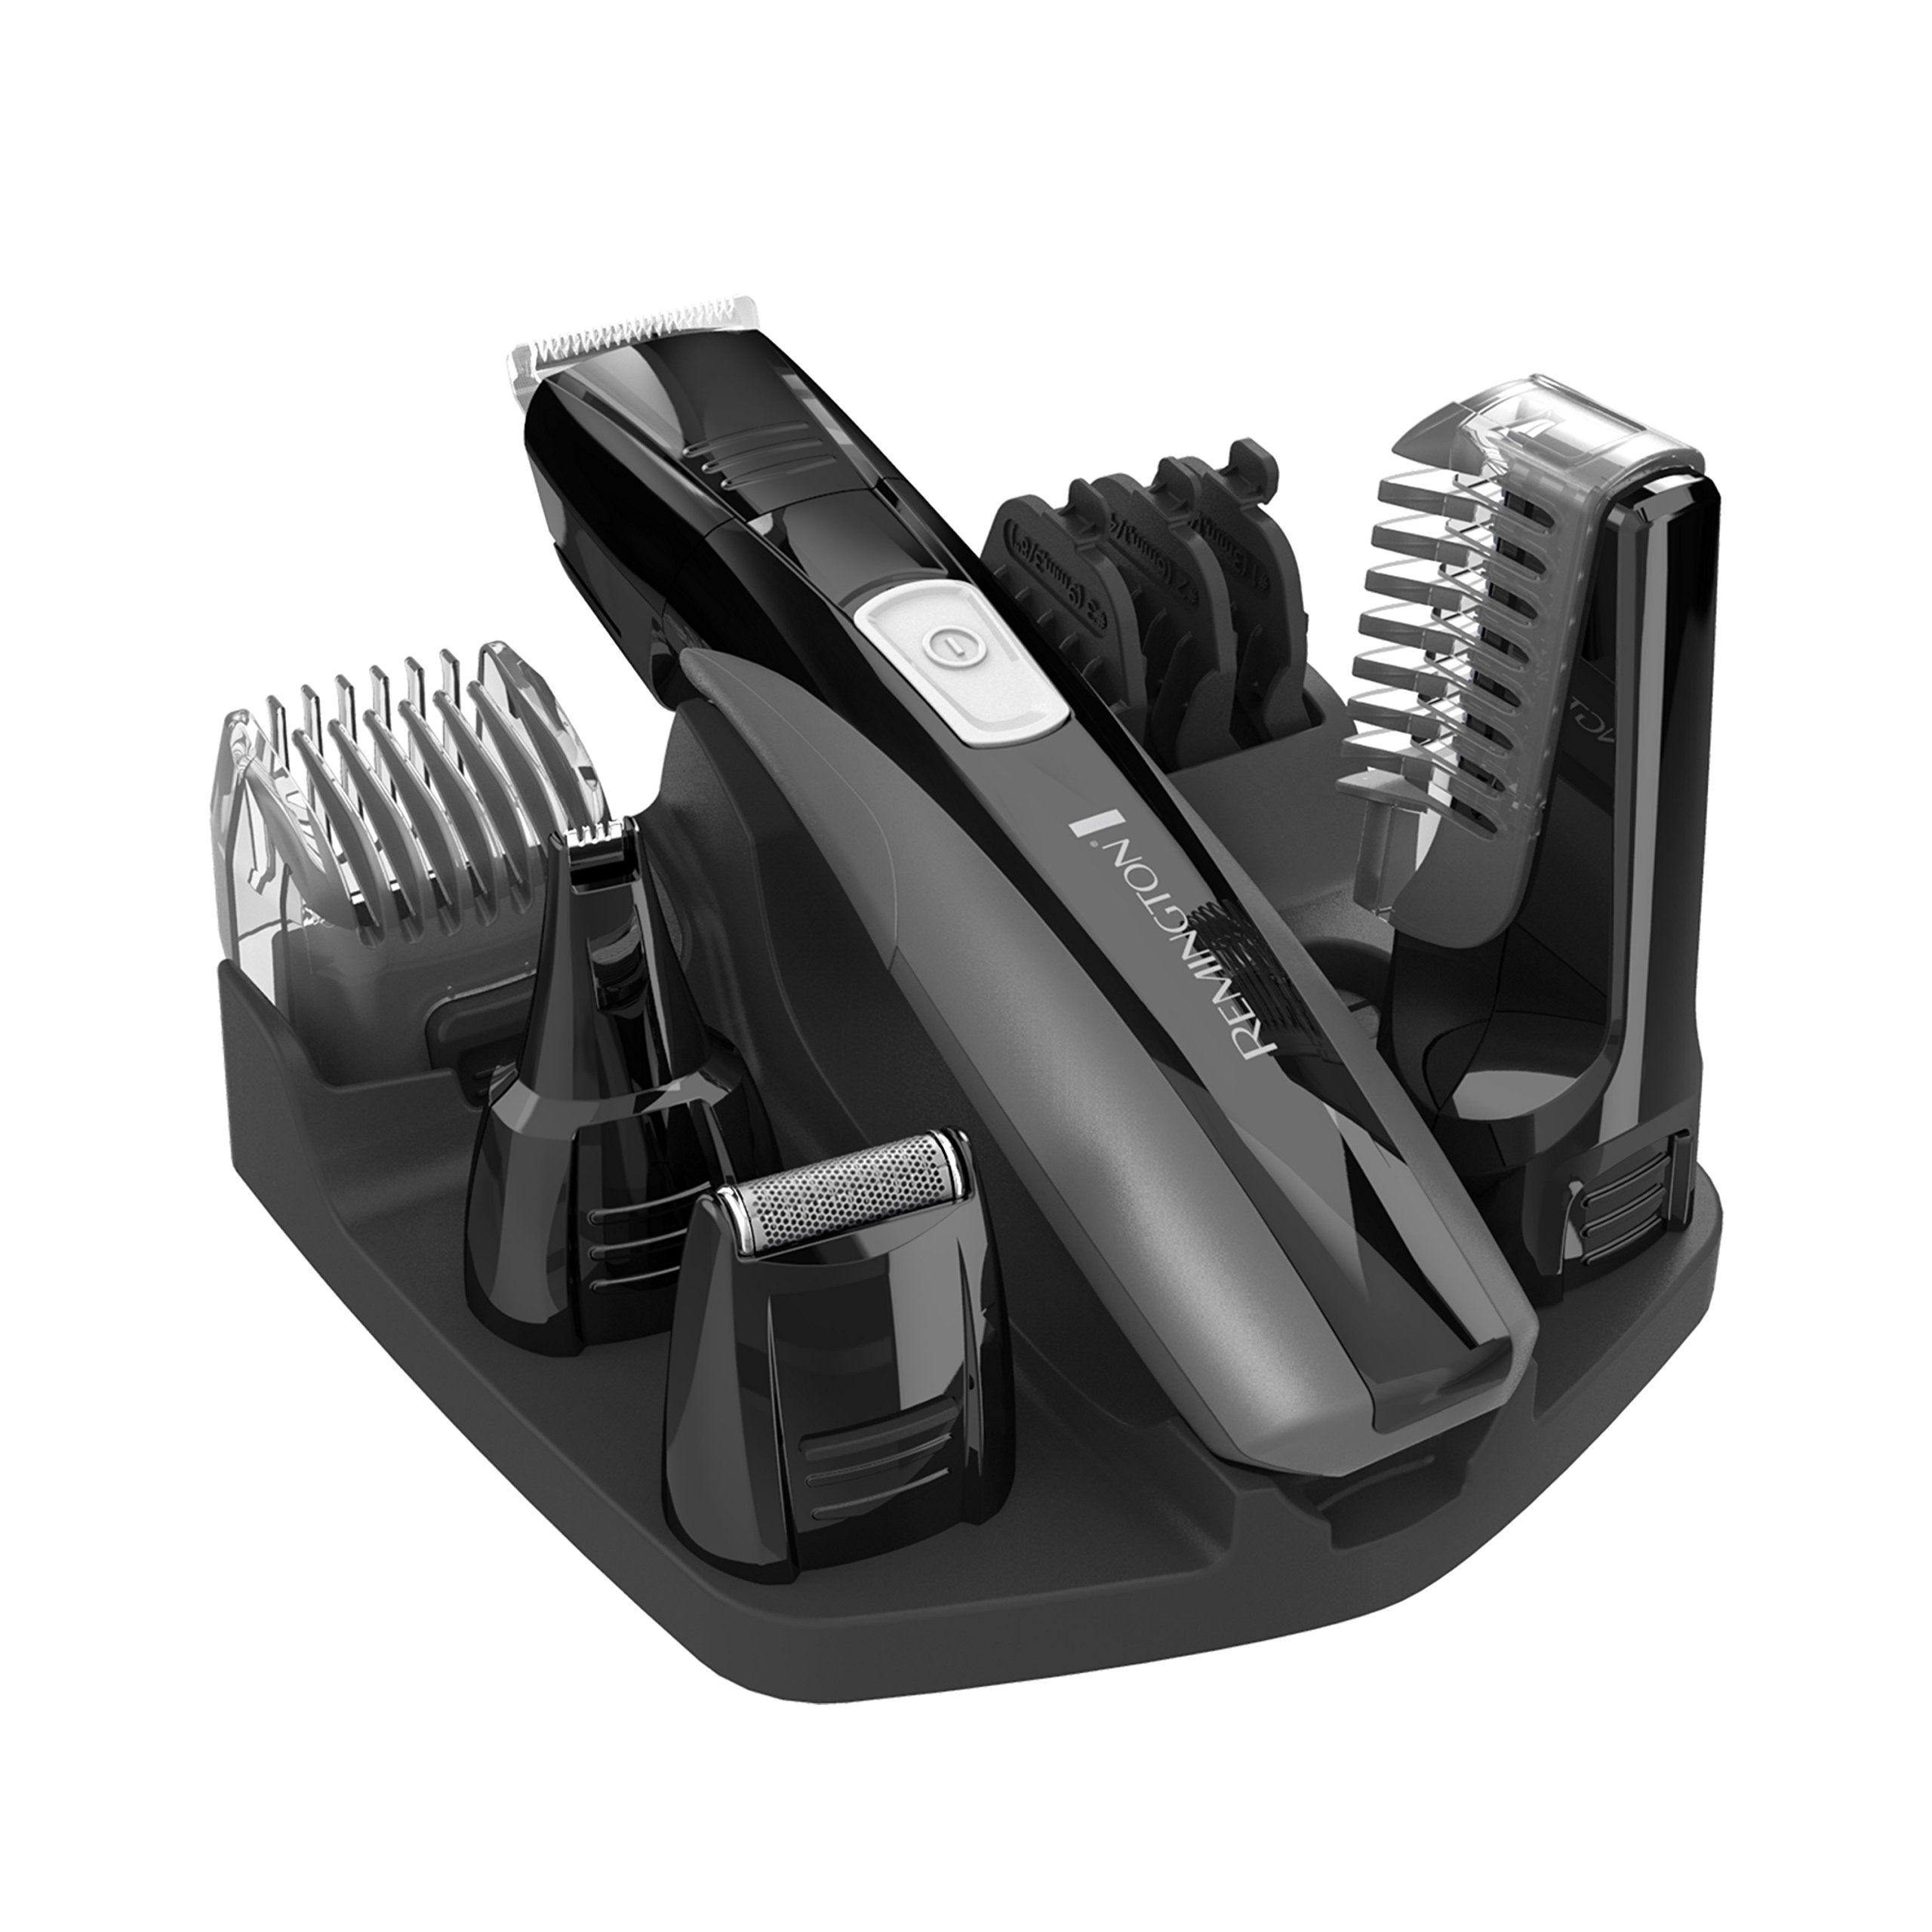 Remington PG525 Head to Toe Lithium Powered Body Groomer Kit, Beard Trimmer (10 Pieces) by Remington